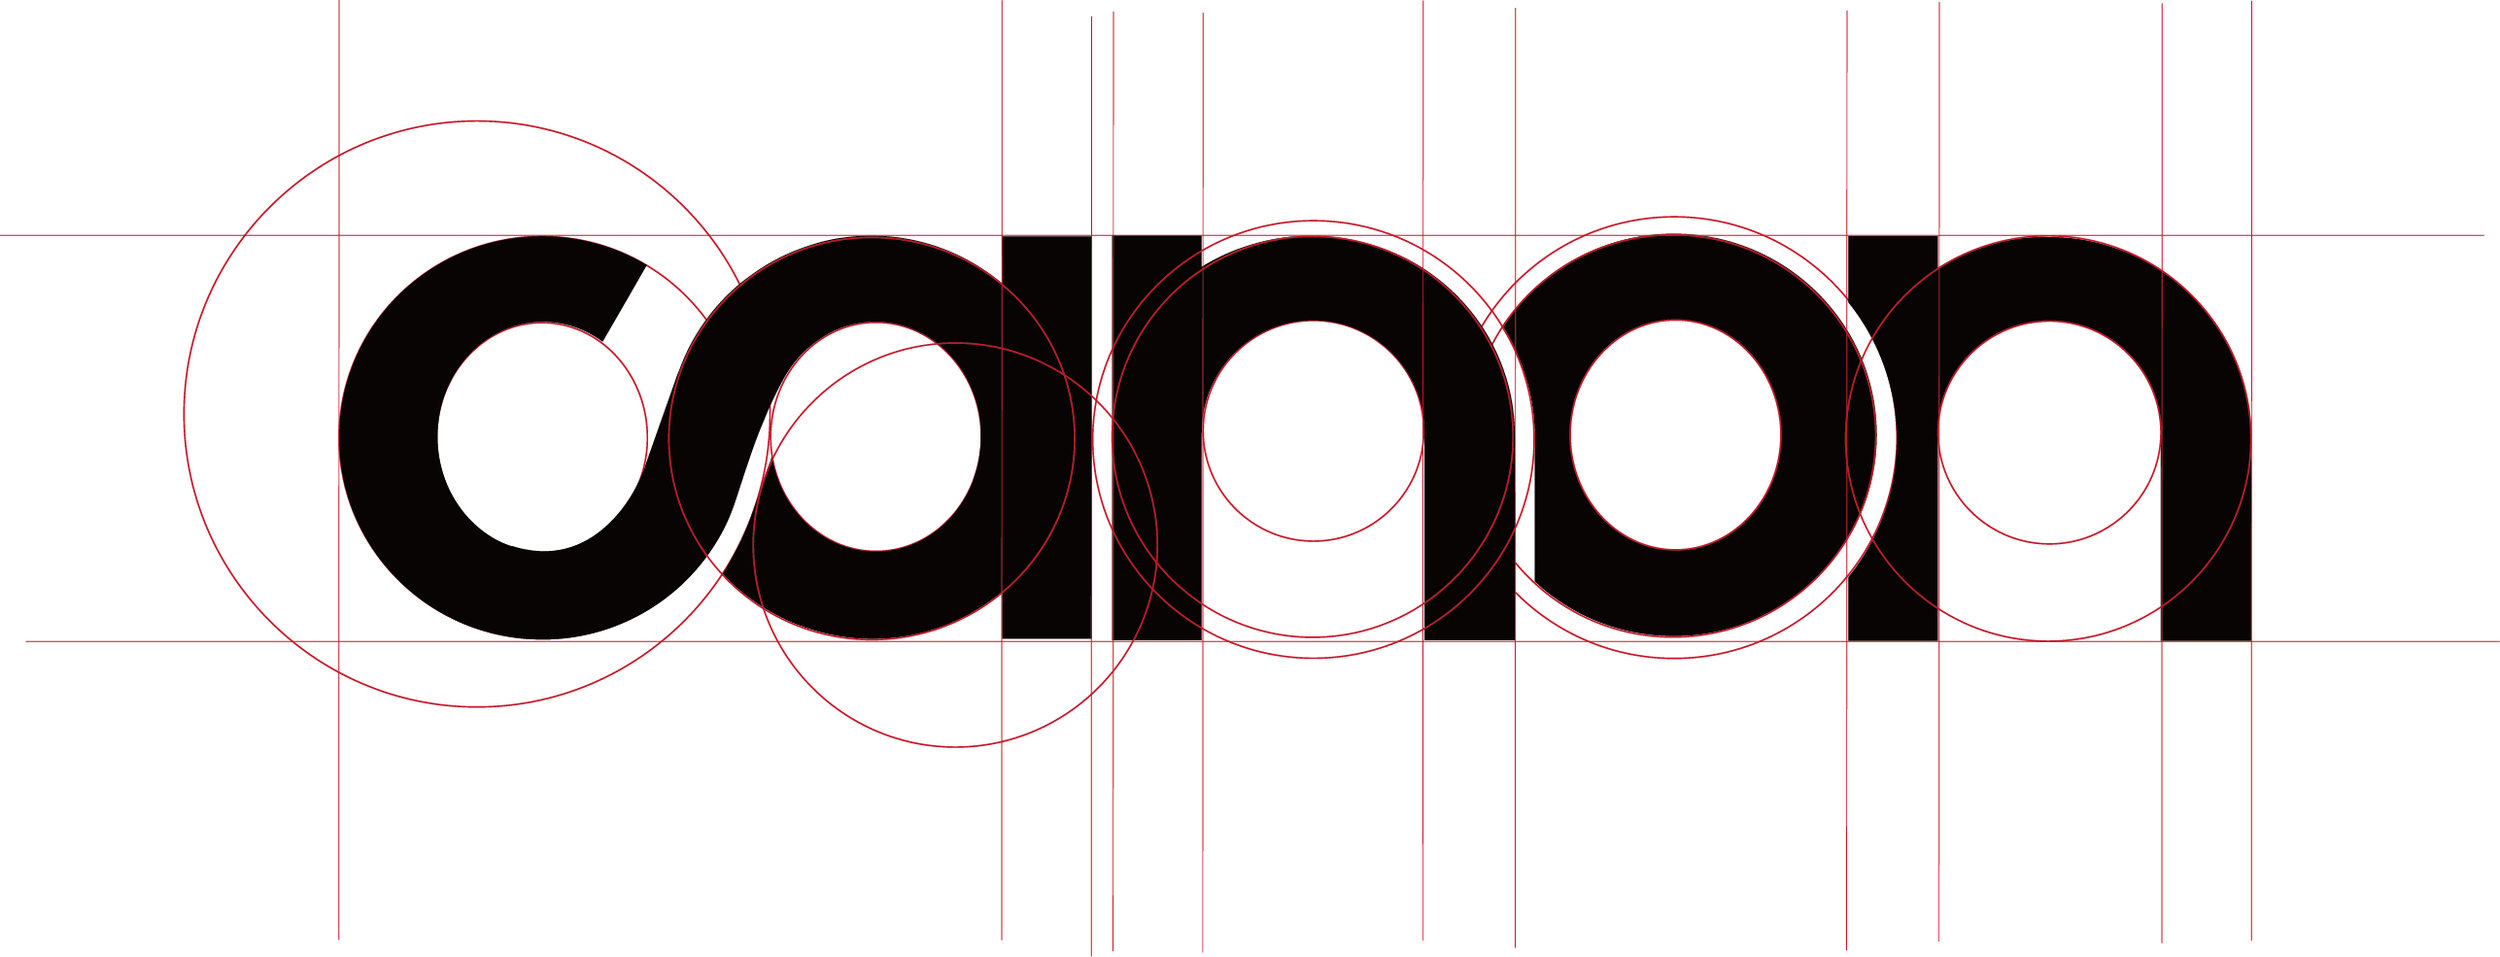 The new logo use an infinity symbol on the letter C and letter A with an open gap meaning that Canon wants to break the boundary of creativity and innovation. Following shows the guiding structure of the logo.